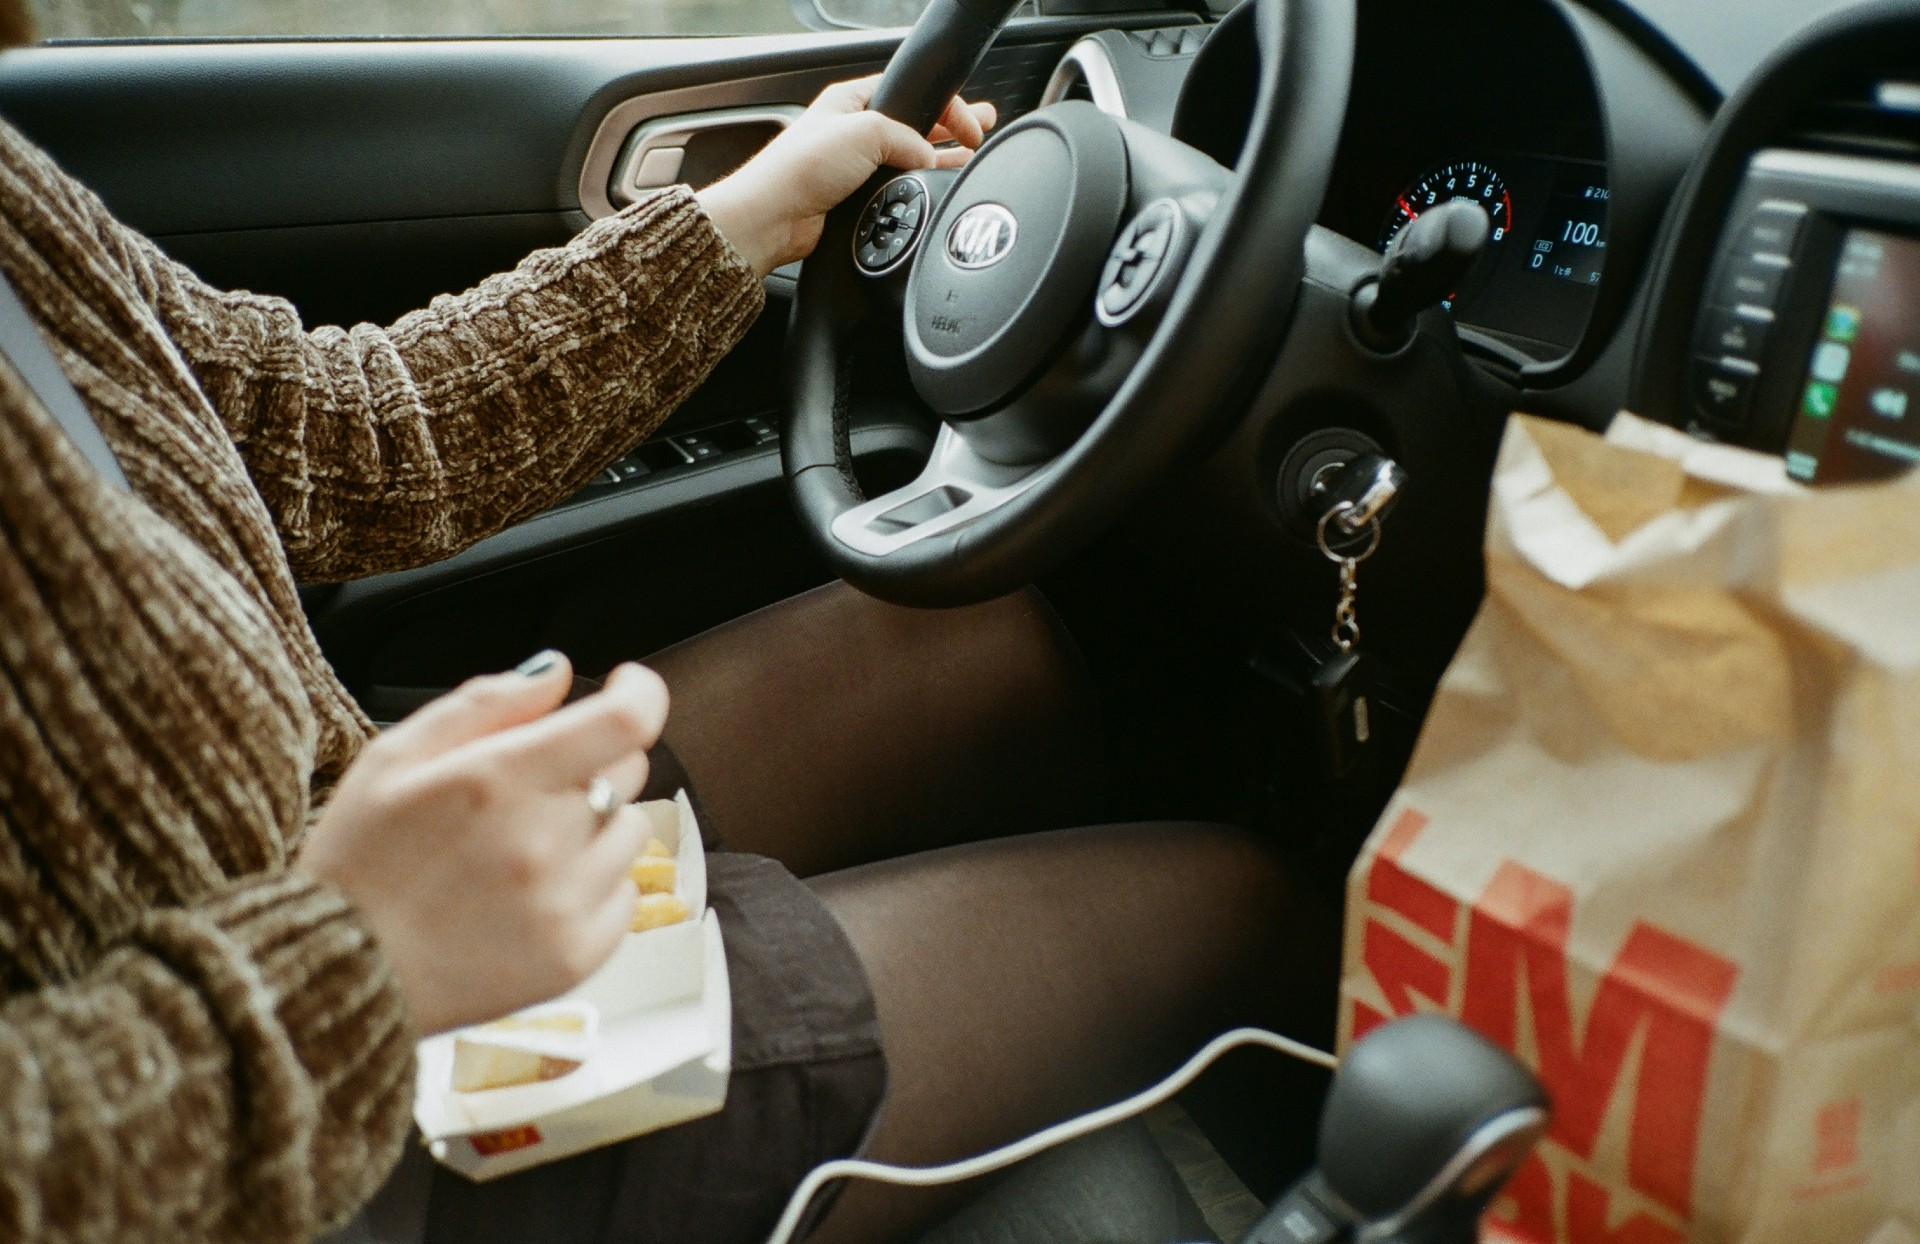 Drive-thru dining offers break from housebound life